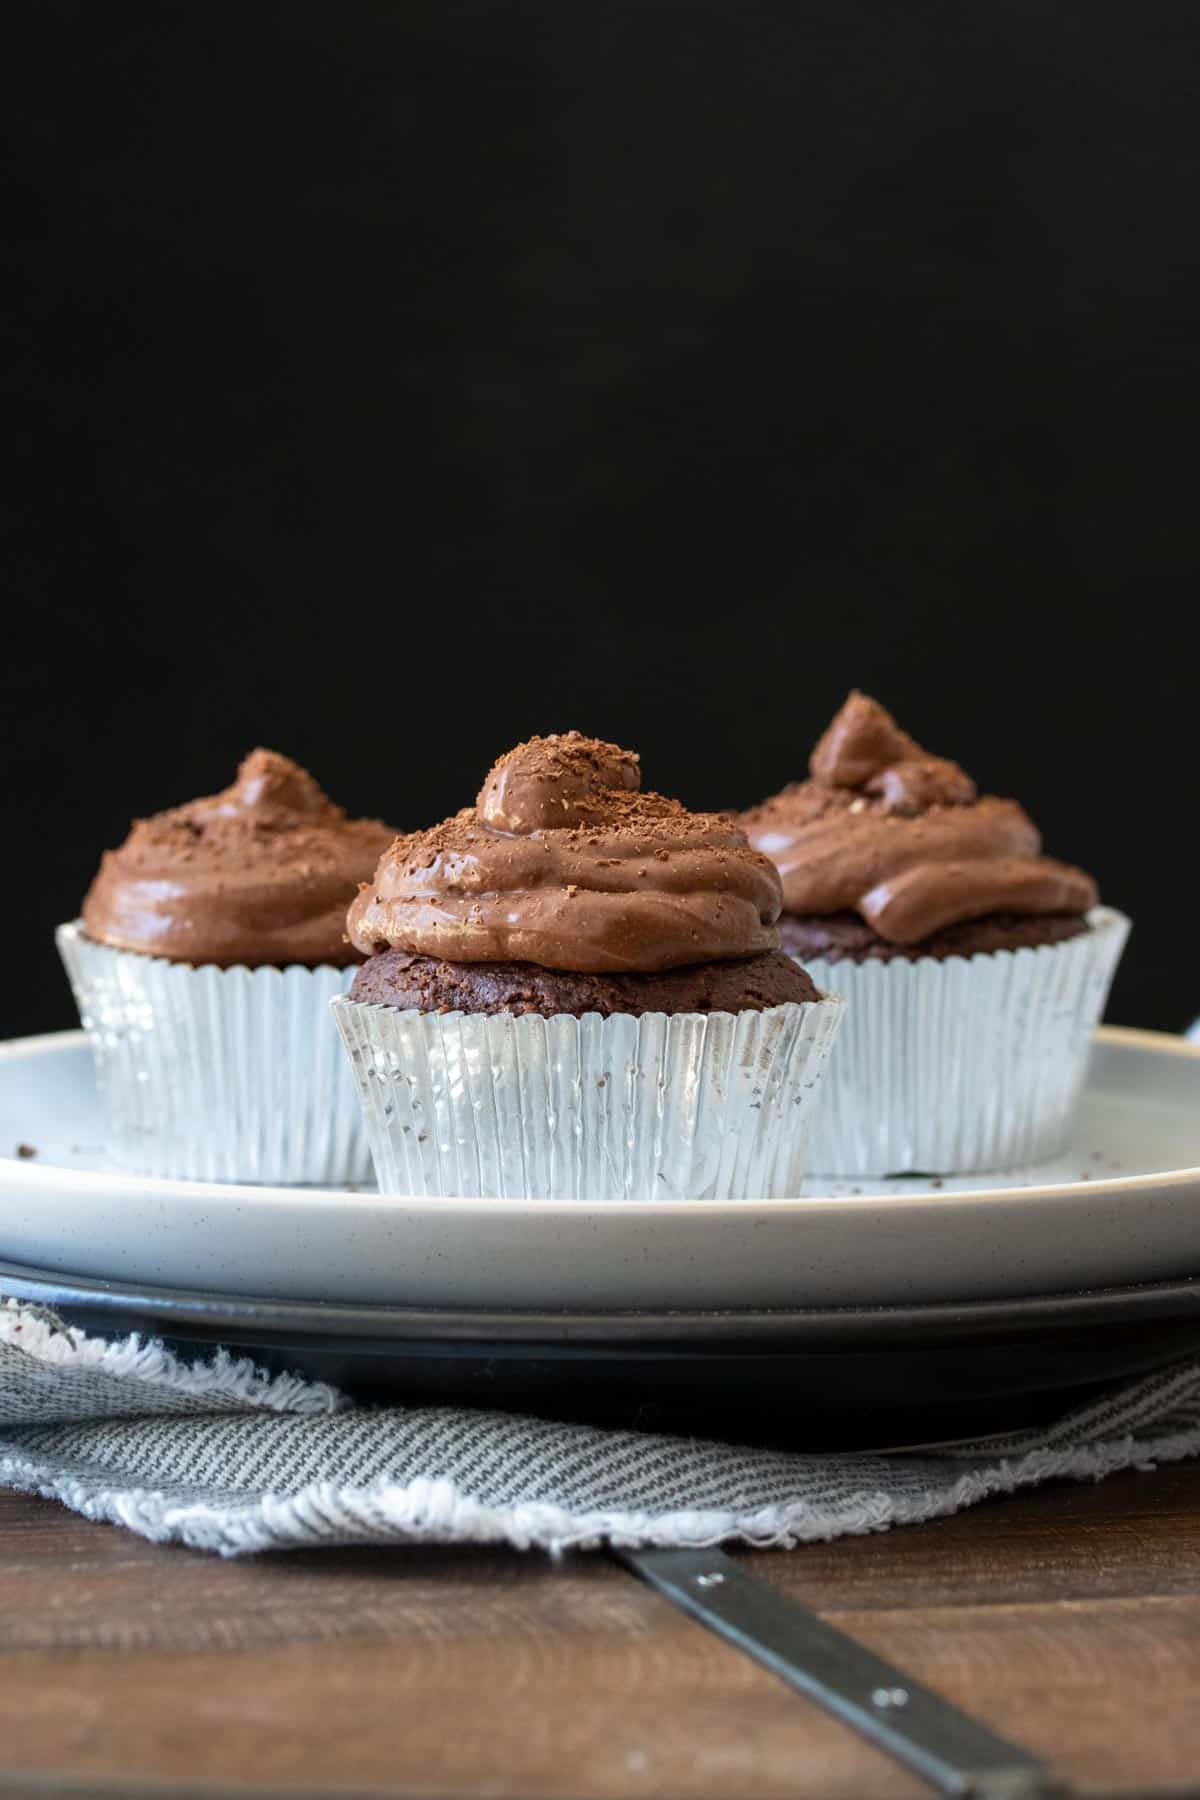 Three chocolate cupcakes with silver liners on a white plate